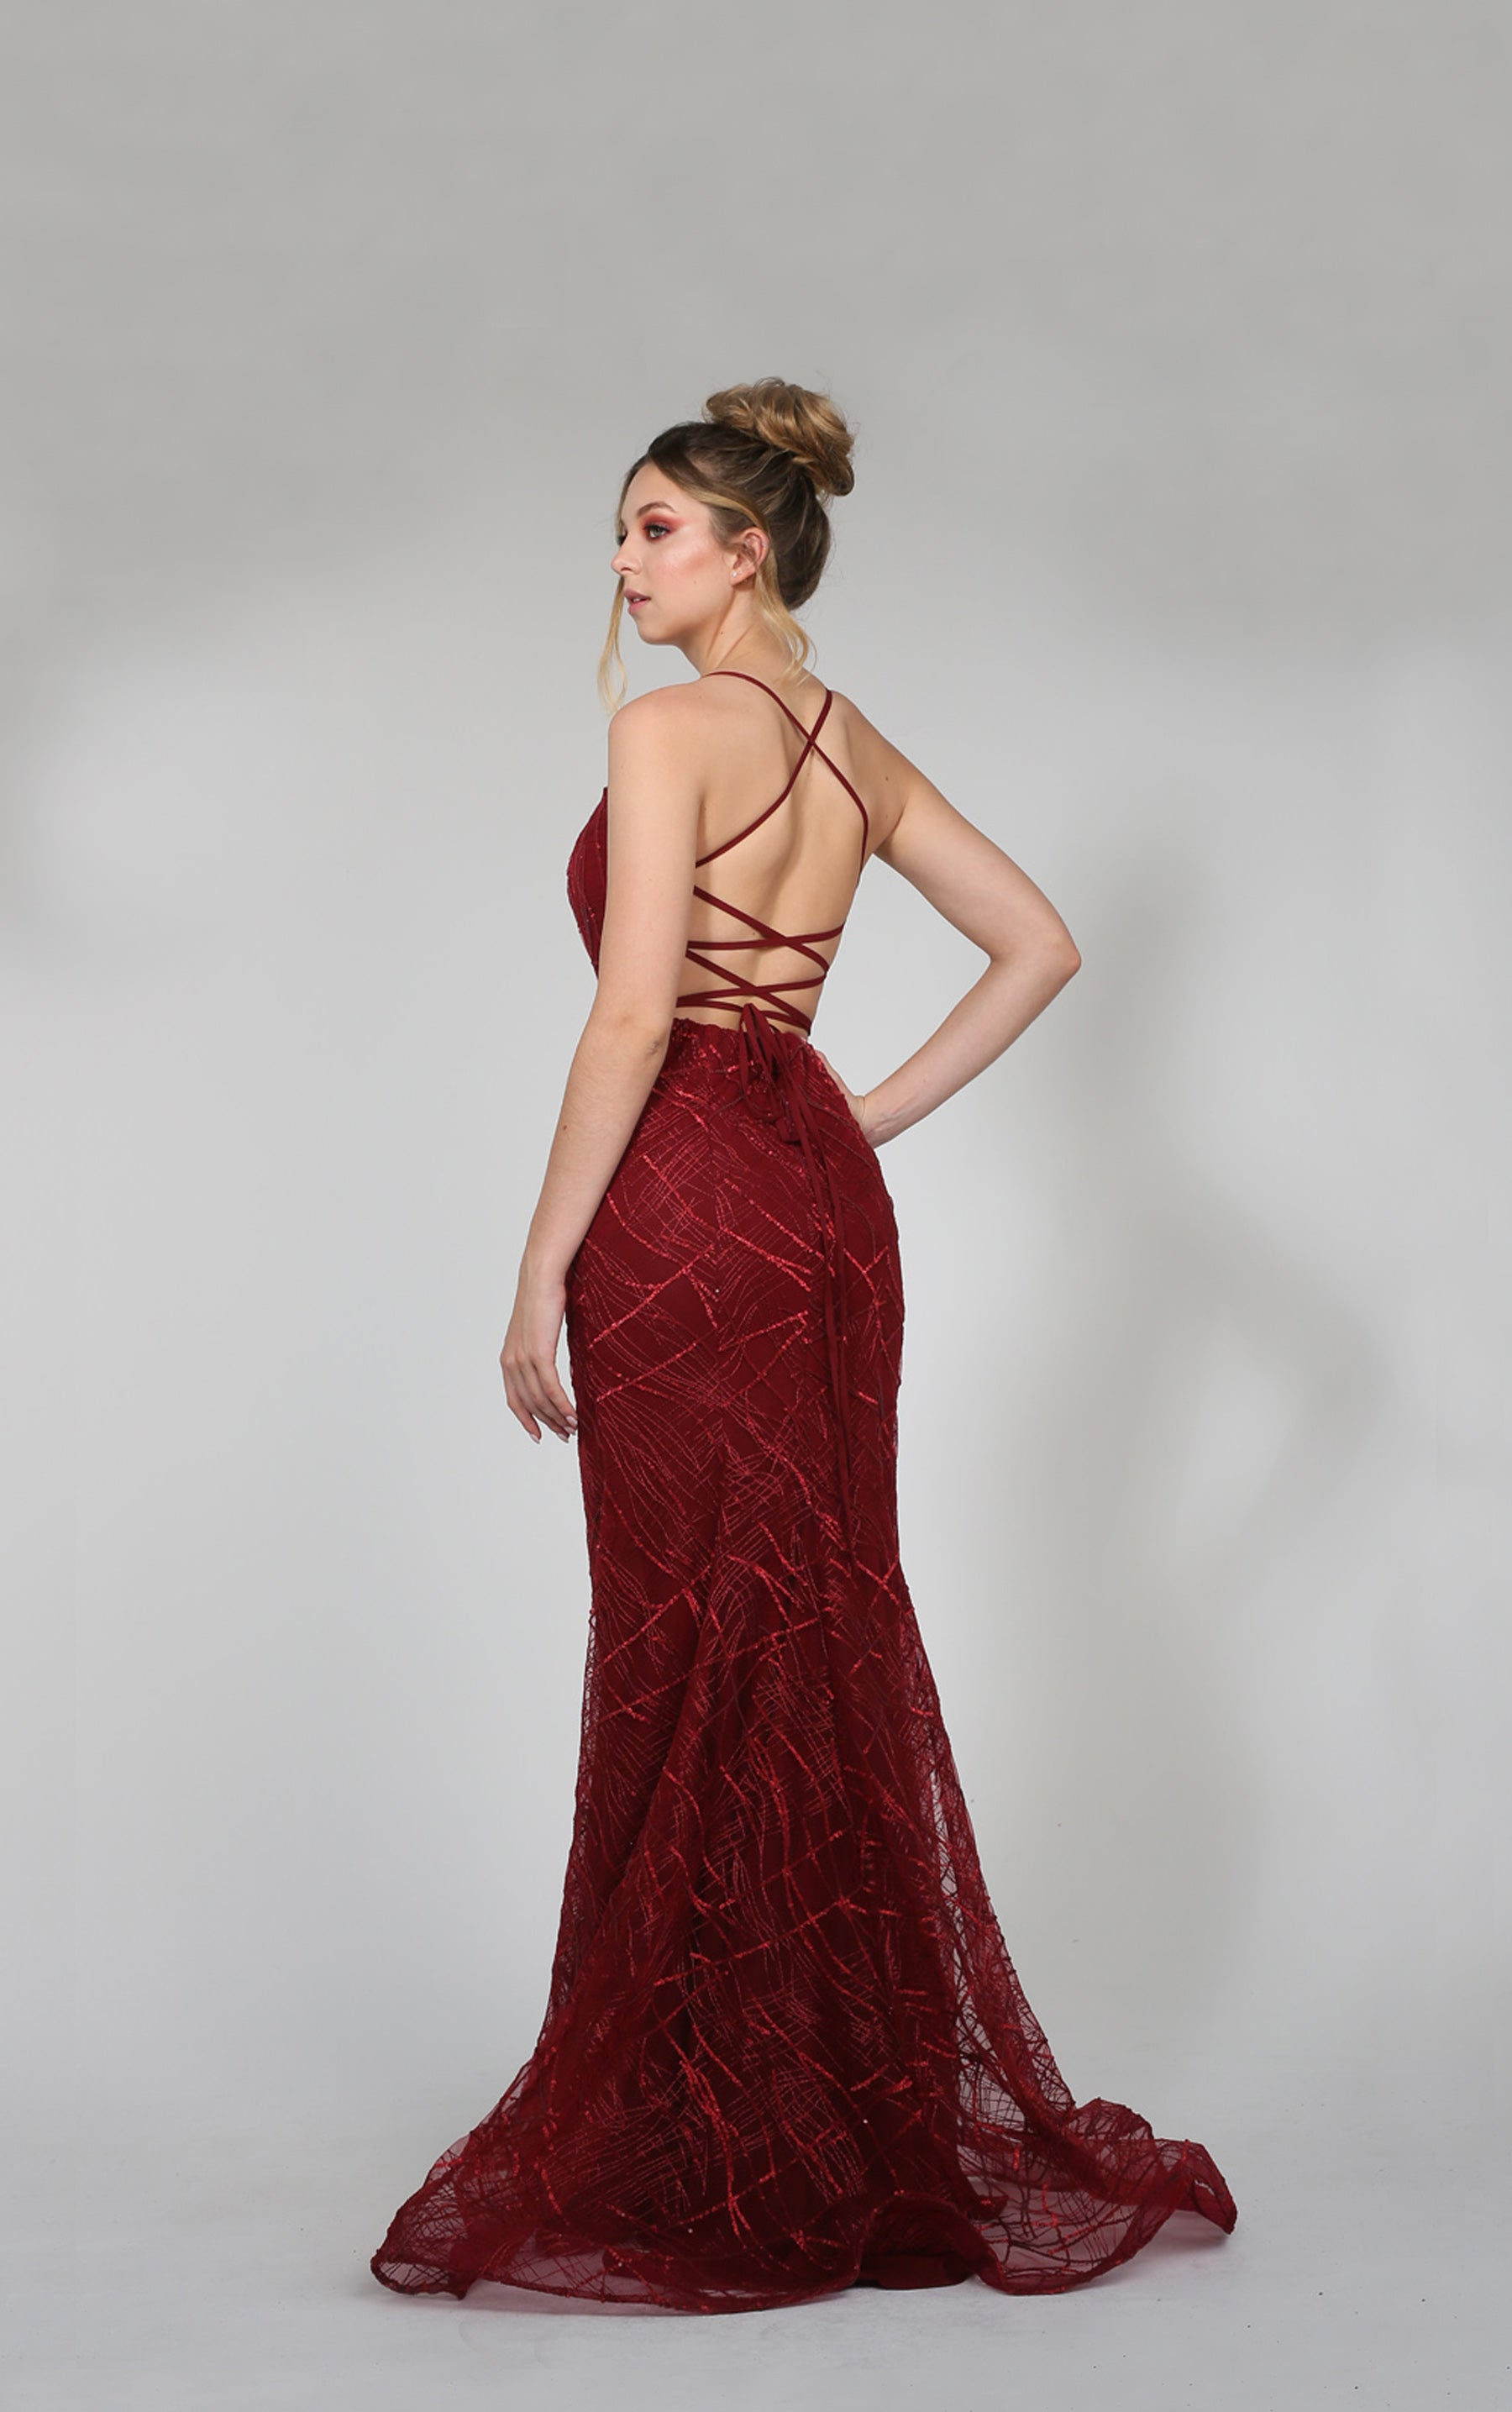 H Aphro Maroon Mermaid Gown